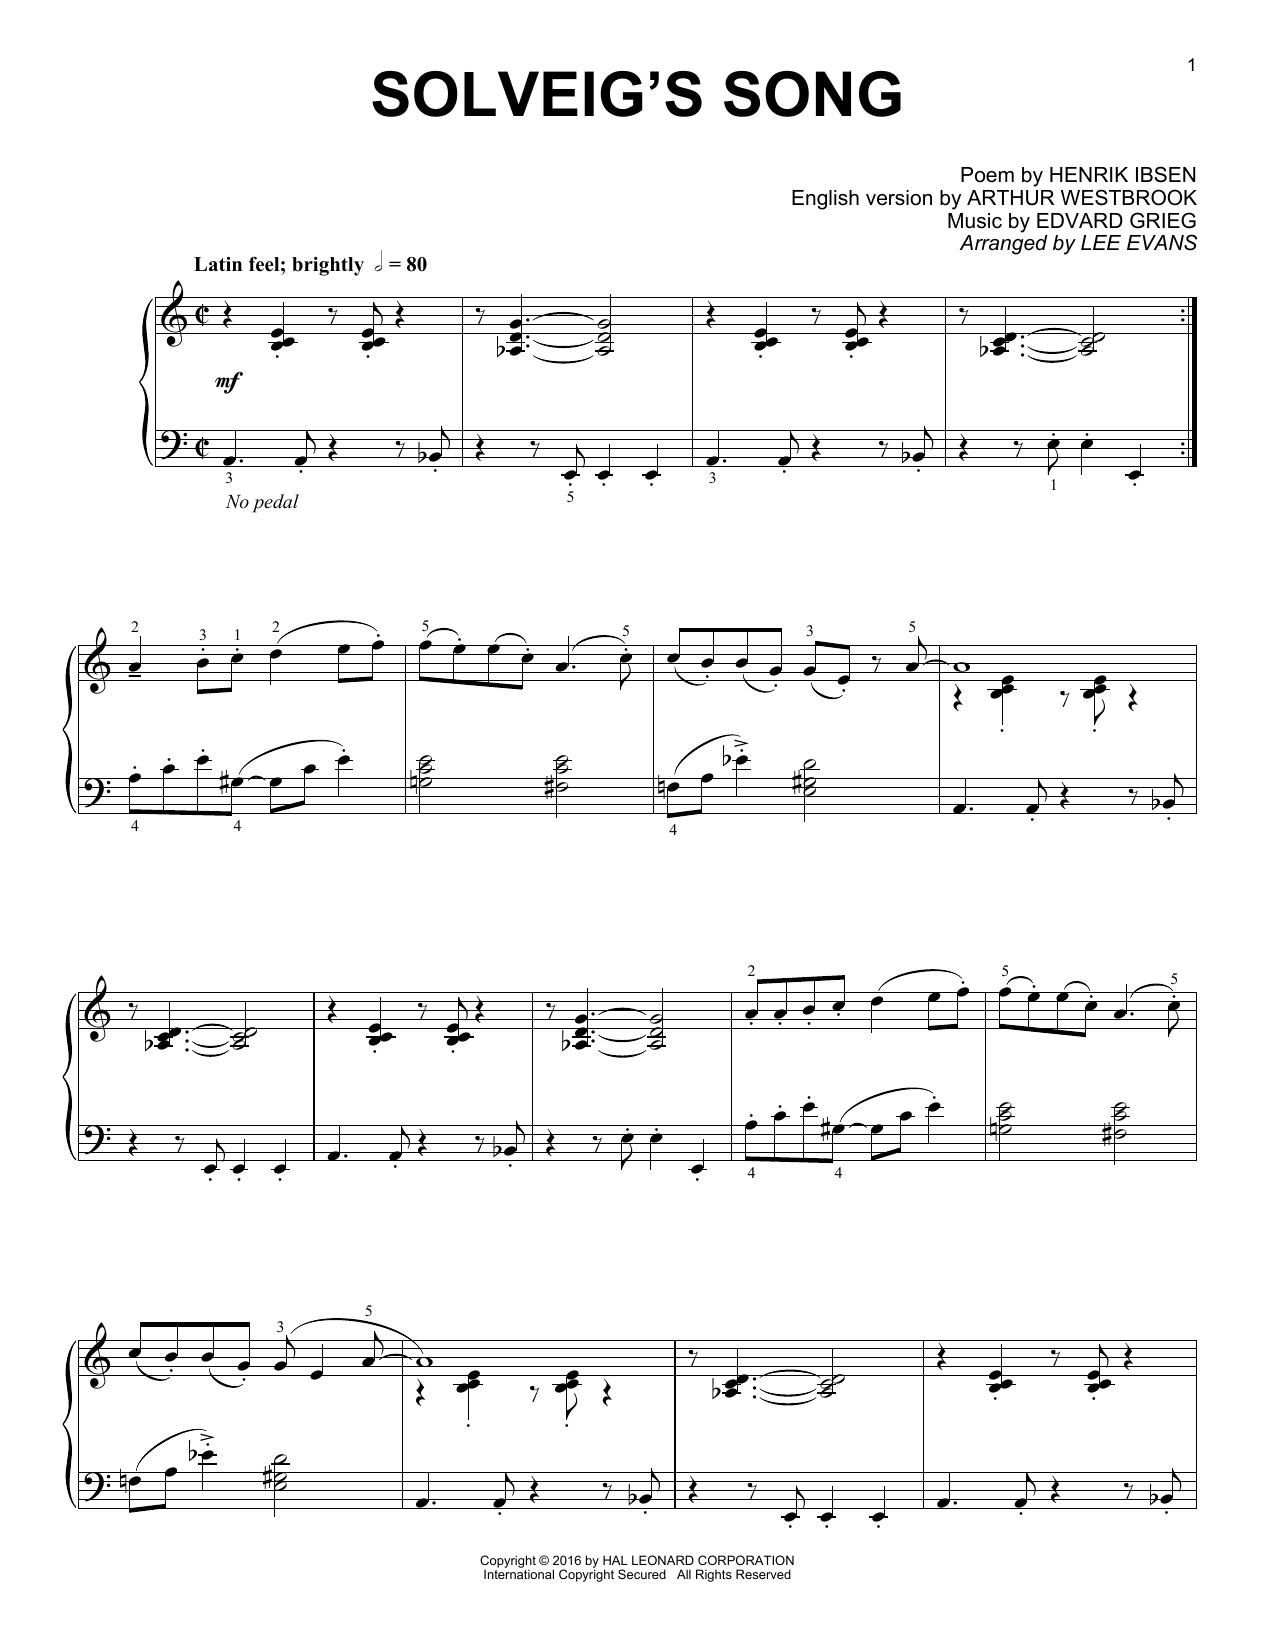 Solveig's Song Sheet Music